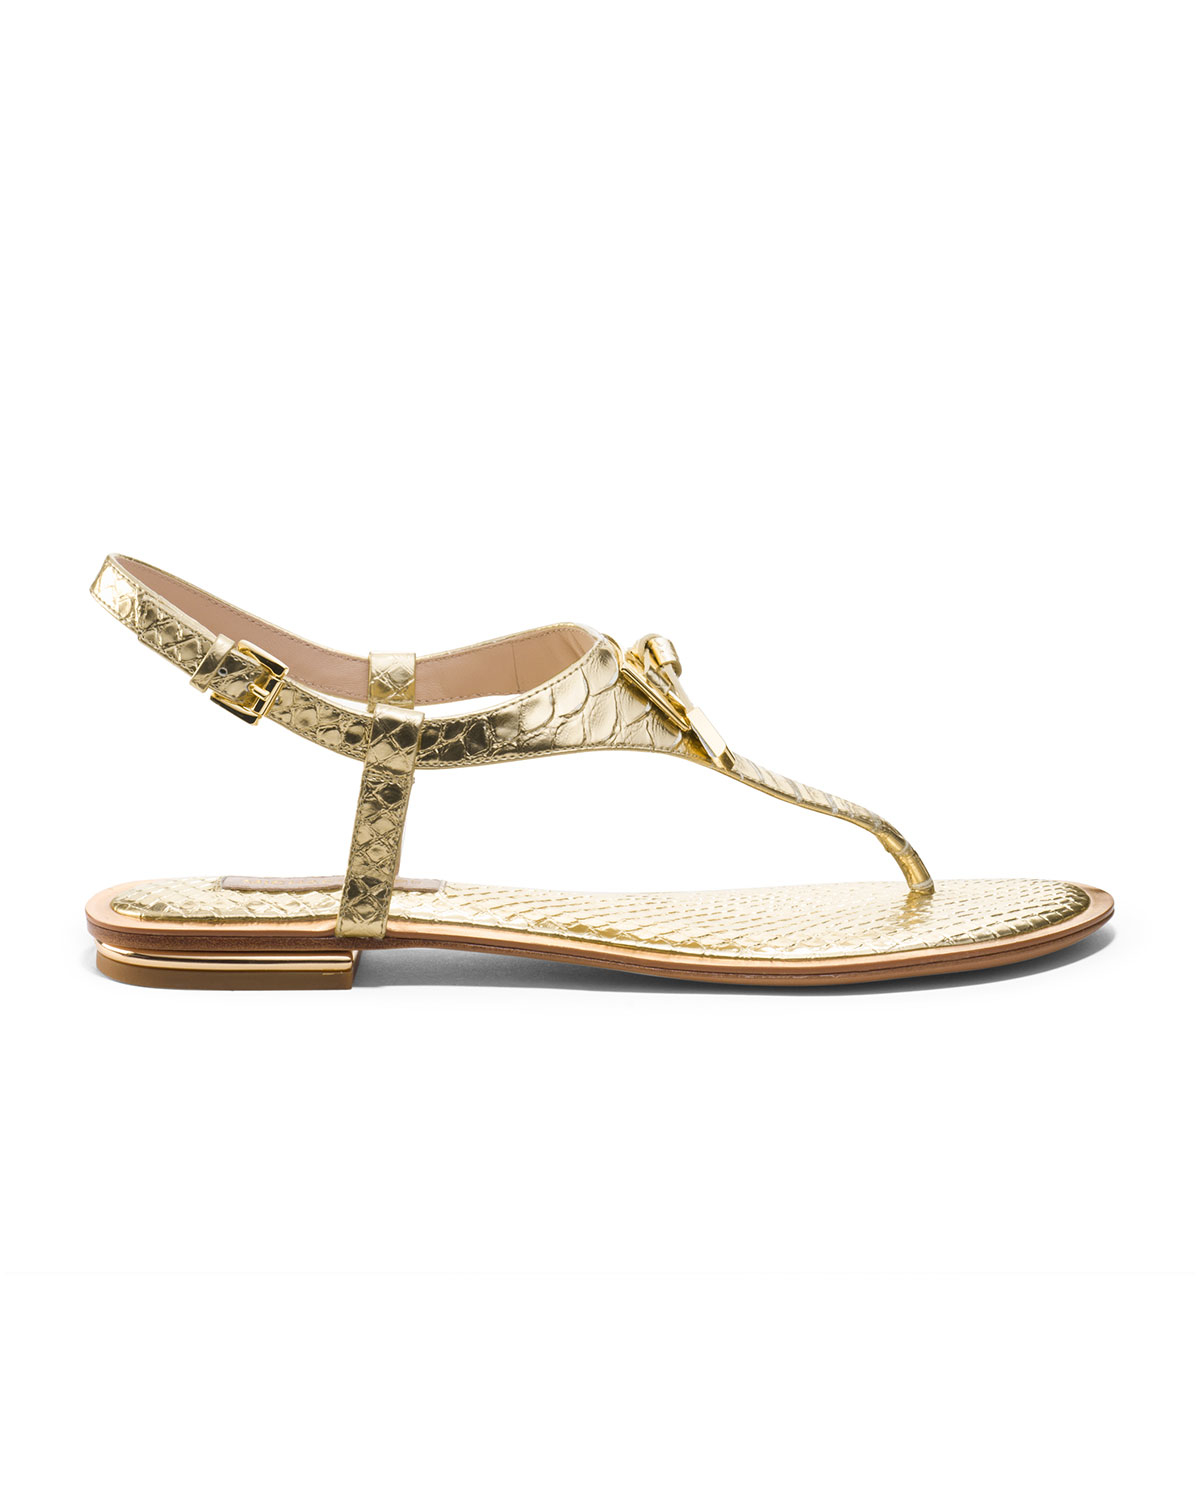 Michael Kors Hara Bowdetail Thong Sandal In Metallic Lyst